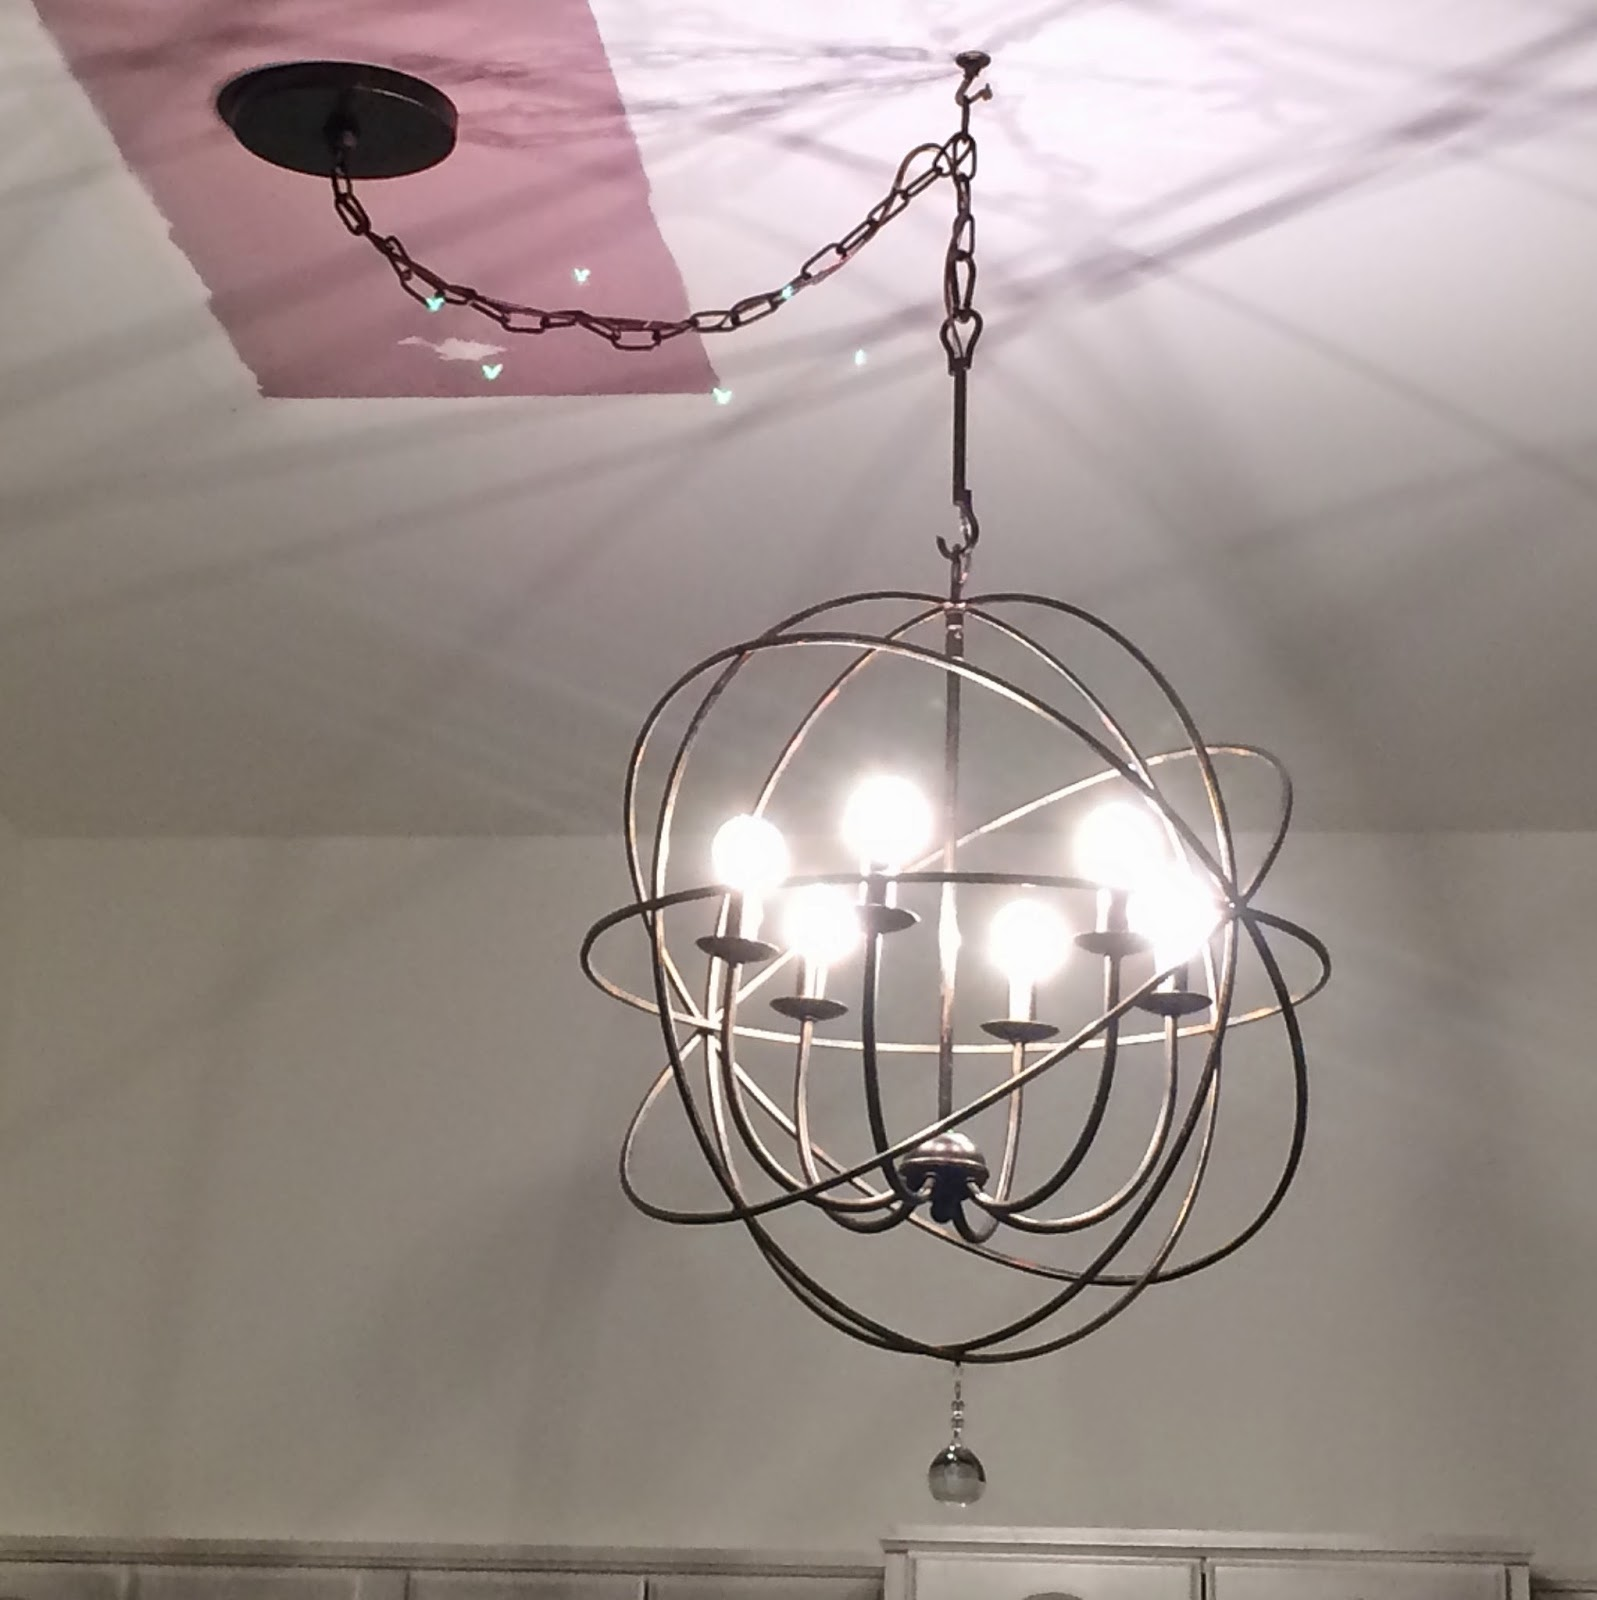 librarian tells all the orb chandelier from ballard designs it was almost painful to look directly at the chandelier the next day we put in 60 watt bulbs with frosted glass the light is brighter but much gentler